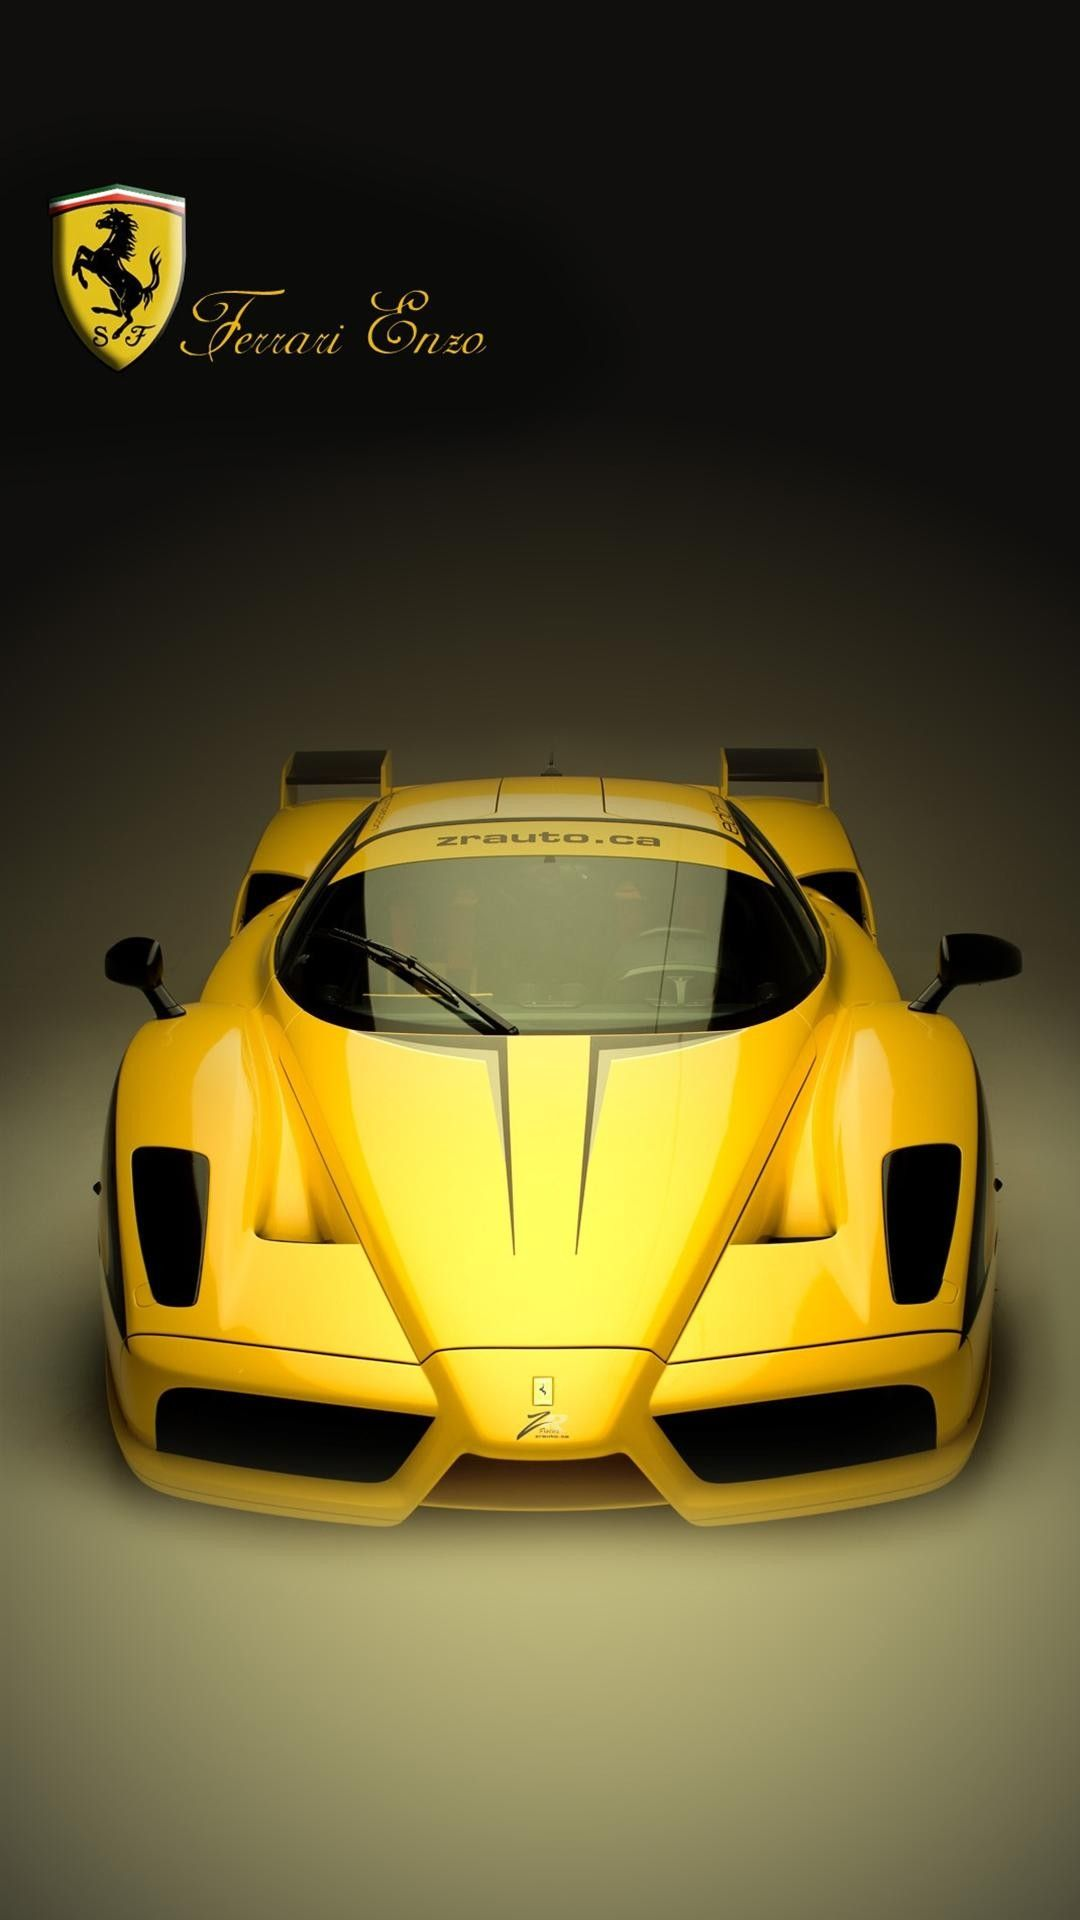 Ferrari Enzo Best Htc One Wallpapers Free And Easy To Download Ferrari Car Ferrari Enzo Ferrari Fxx